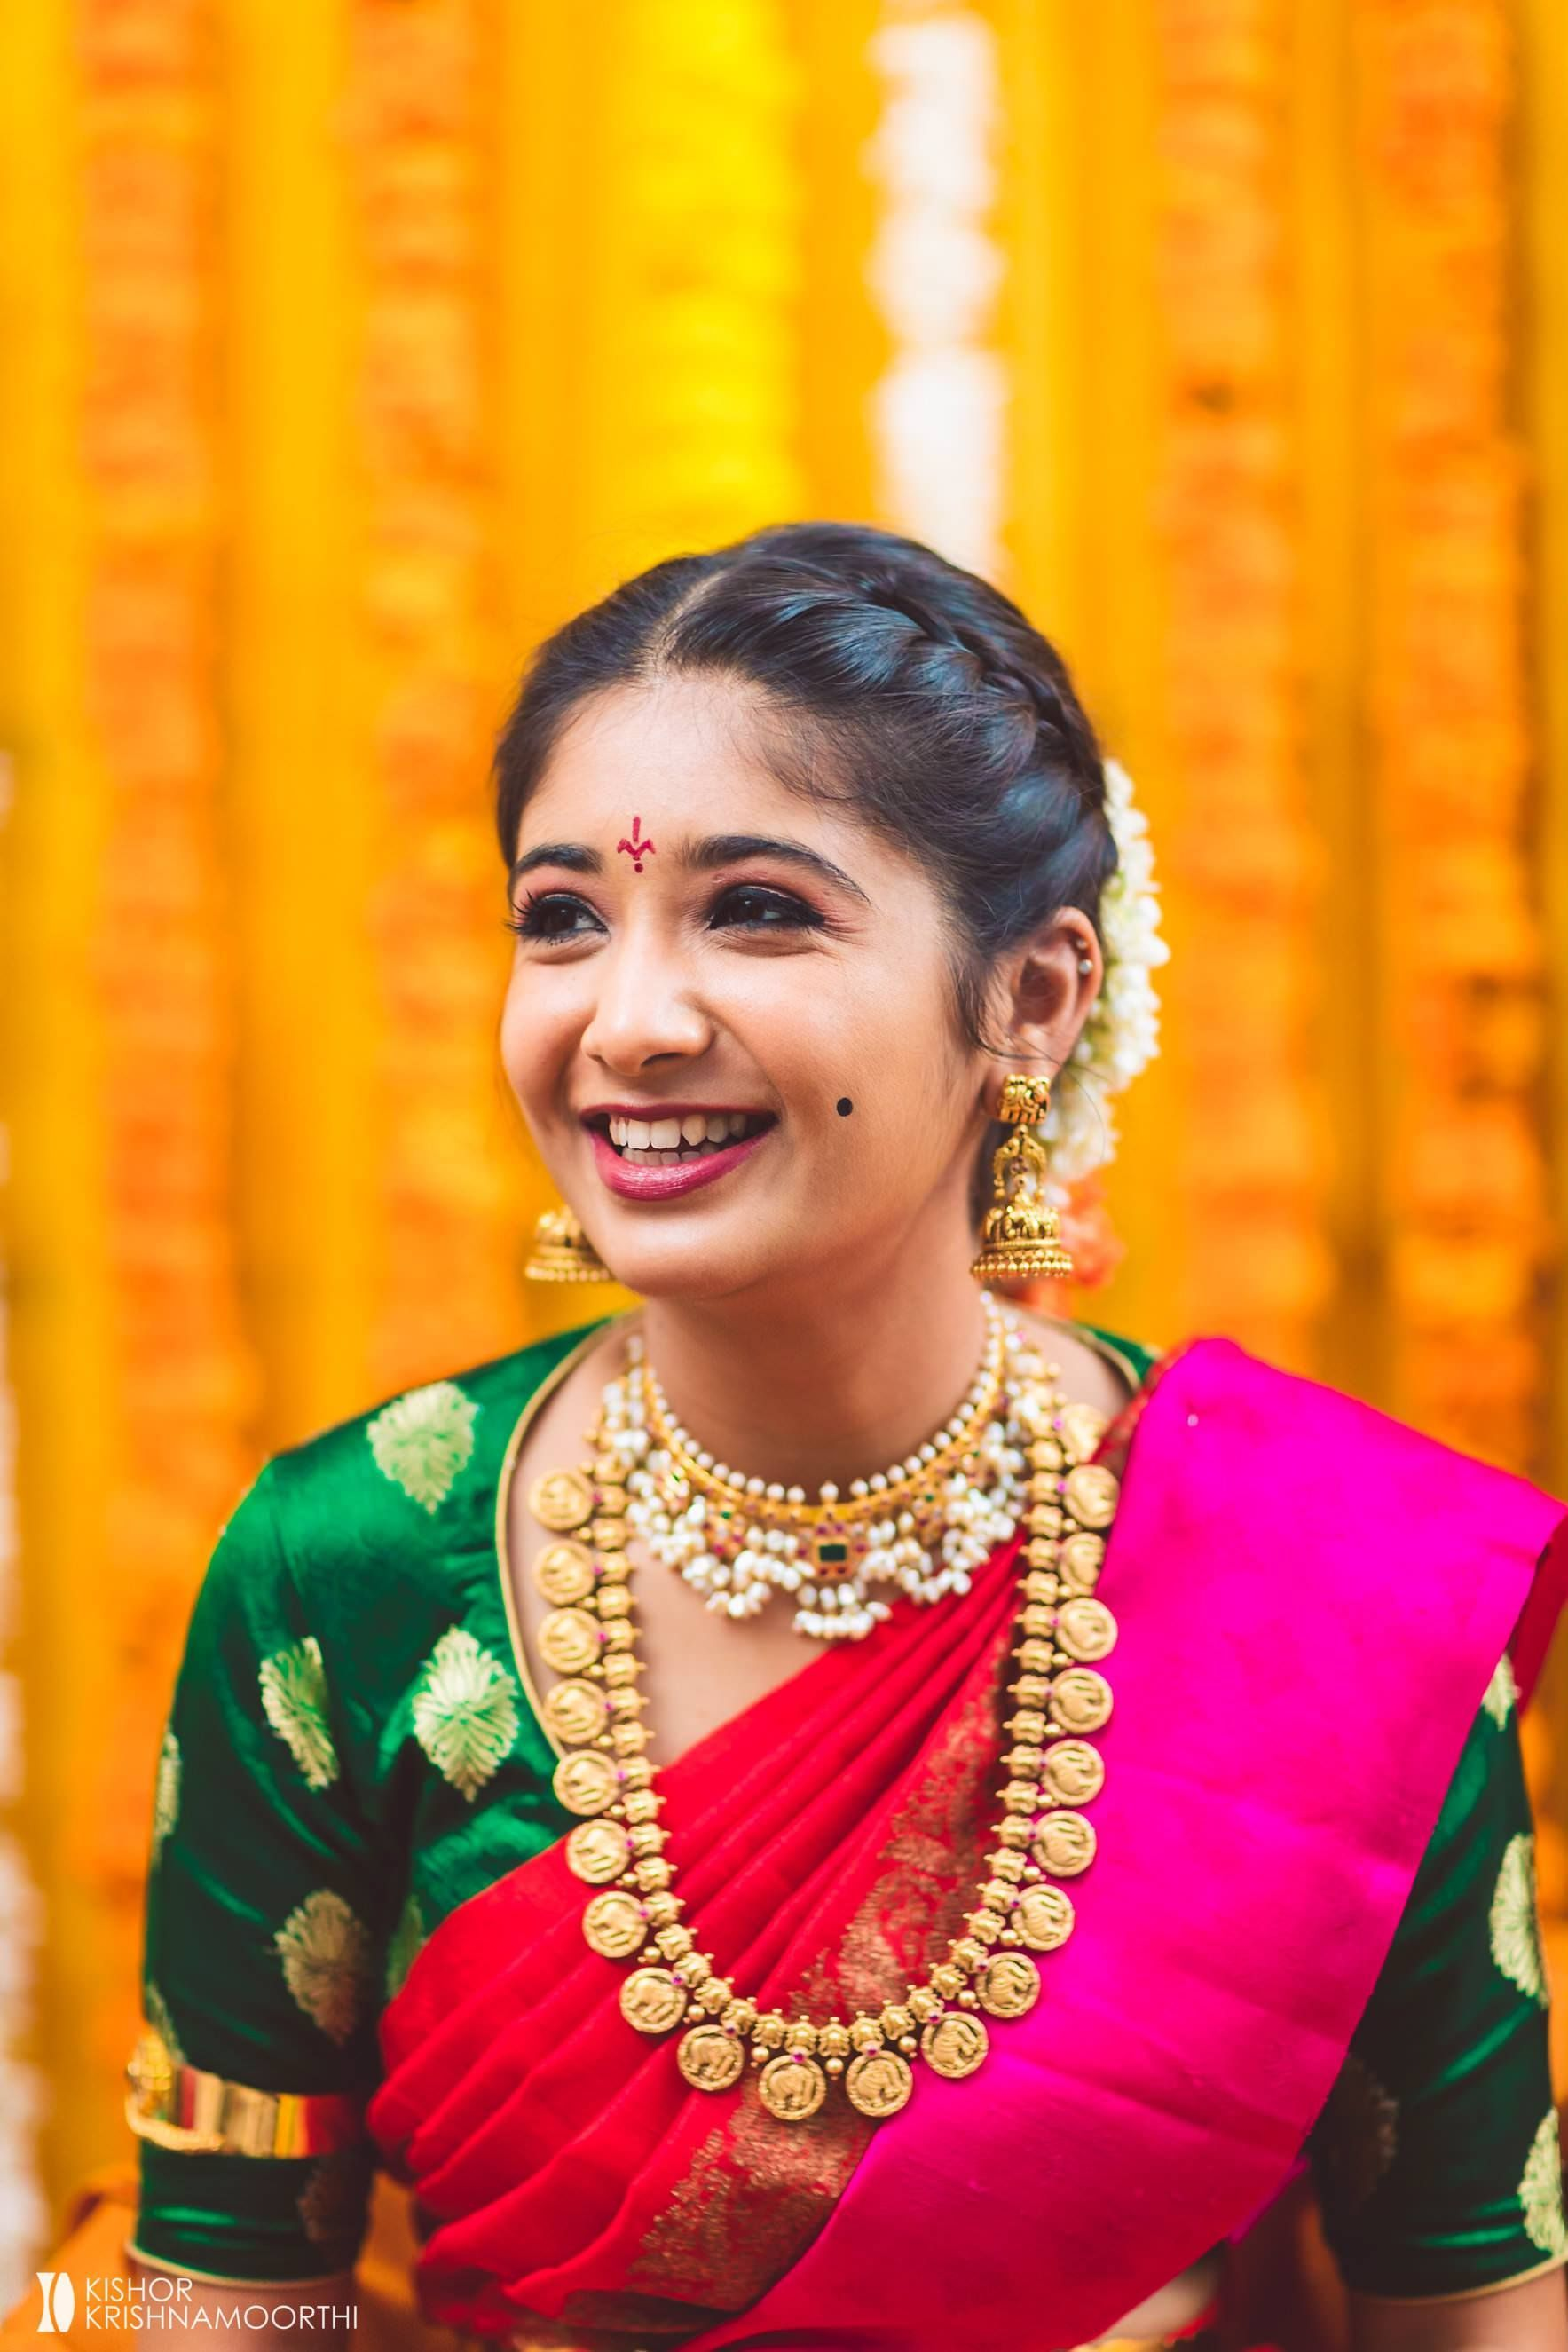 Image Result For Traditional Poola Jada Indian Bride Hairstyle Engagement Hairstyles South Indian Bride Hairstyle